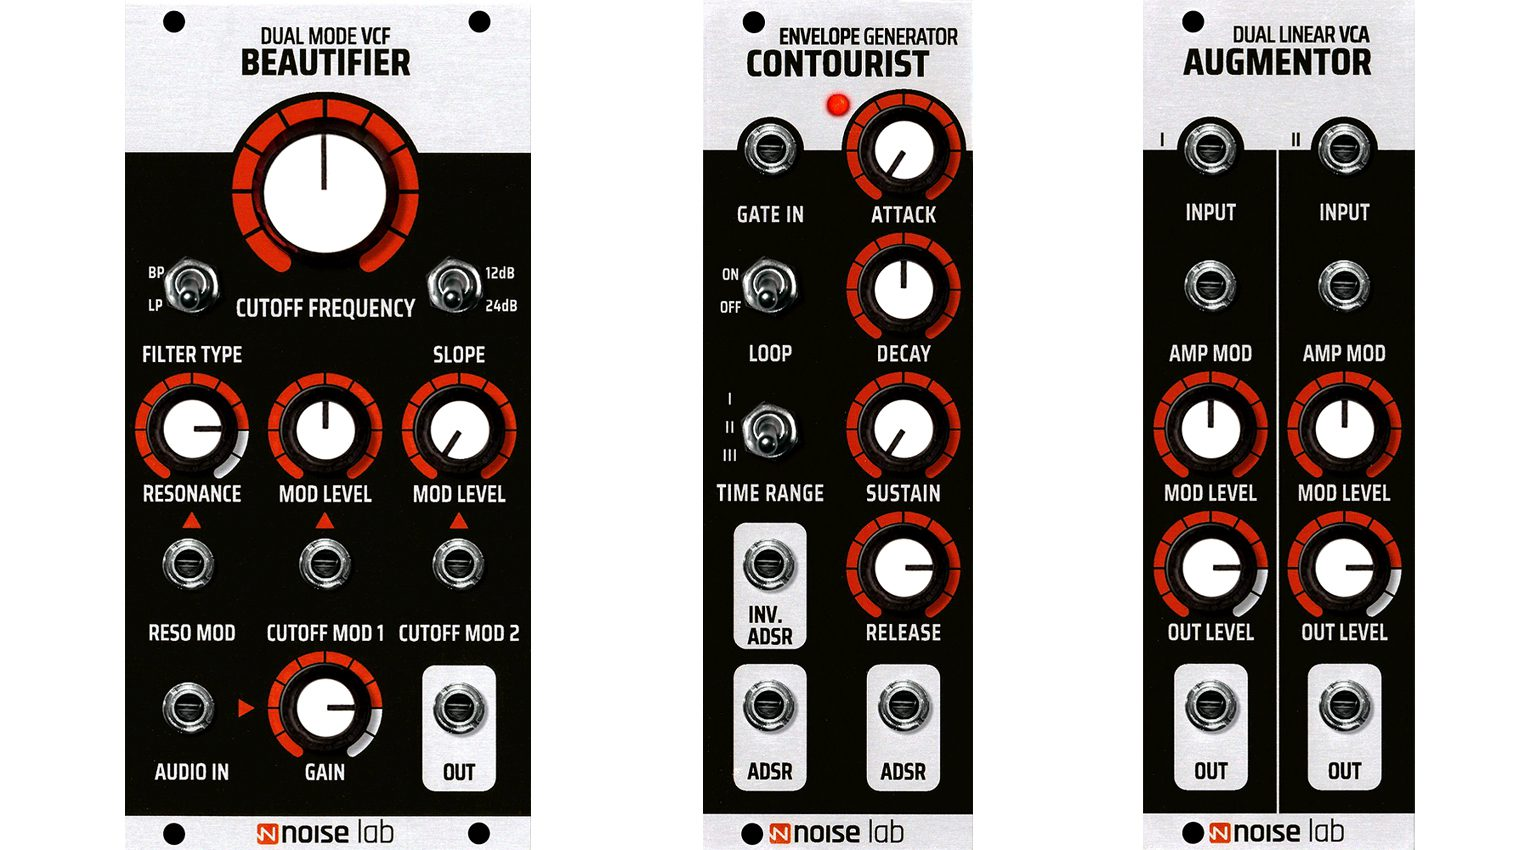 Noise Lab Beautifier, Contourist, Augmentor